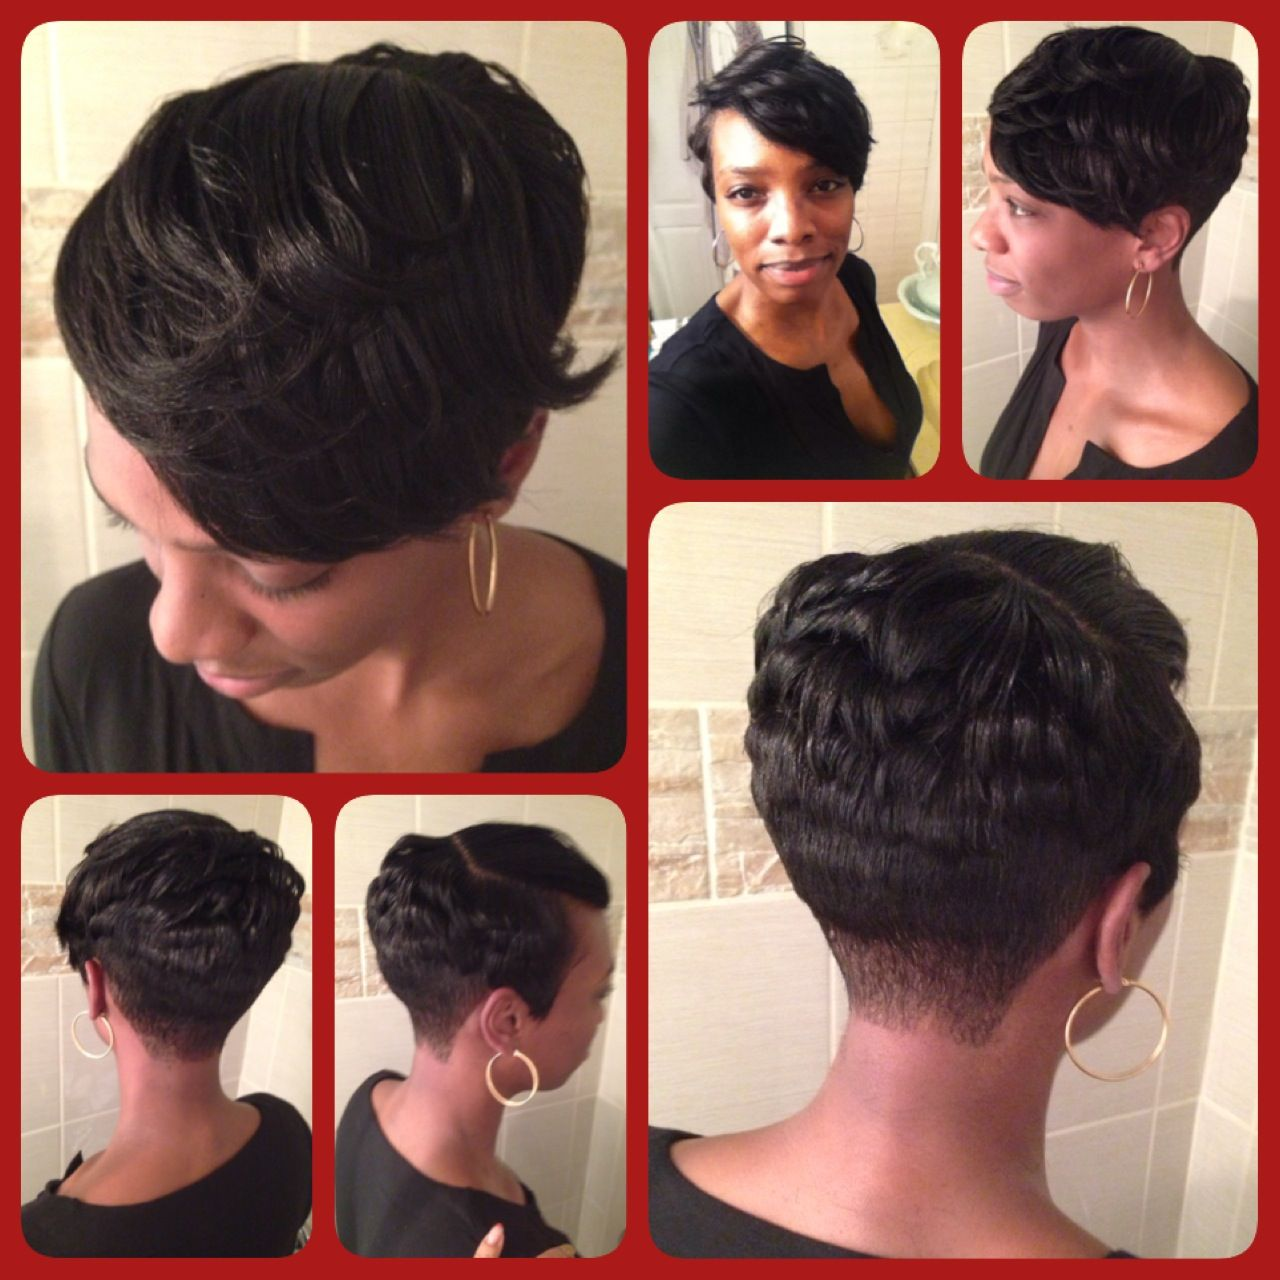 Enjoyable 1000 Images About My Meagan Good Short Hairstyles On Pinterest Short Hairstyles Gunalazisus